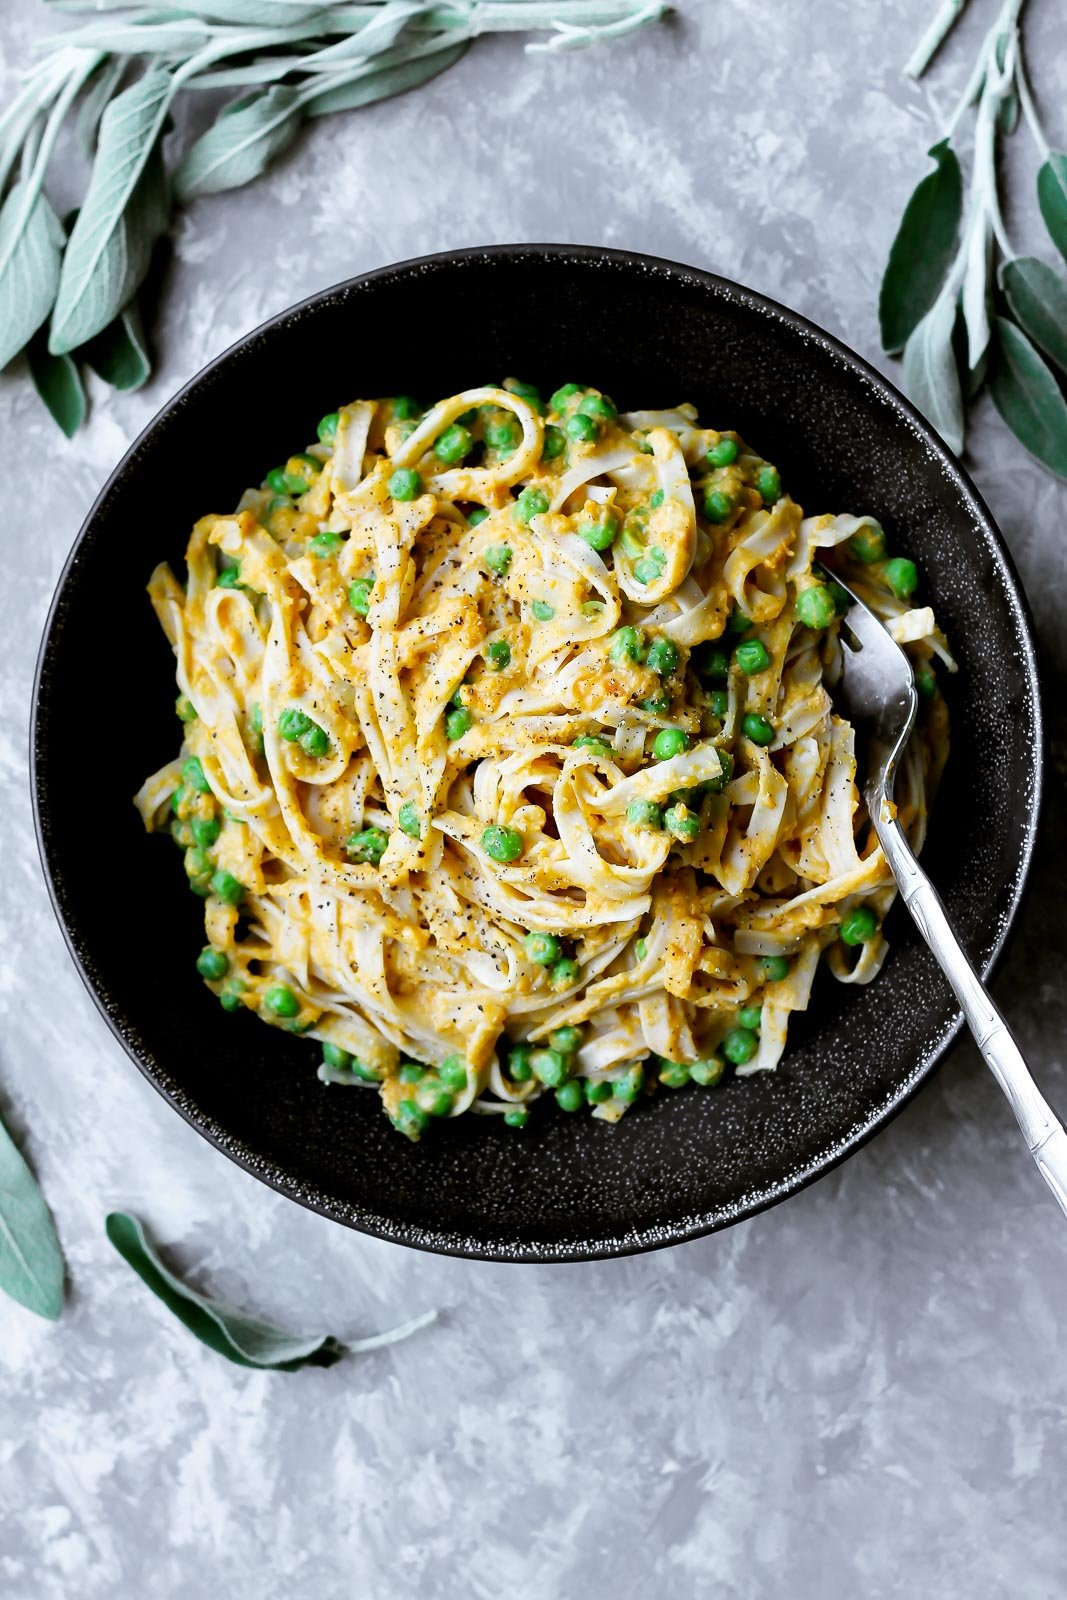 Roasted butternut squash pasta with peas ambitious kitchen savory roasted butternut squash pasta with sweet green peas is the ultimate vegetarian comfort food forumfinder Gallery